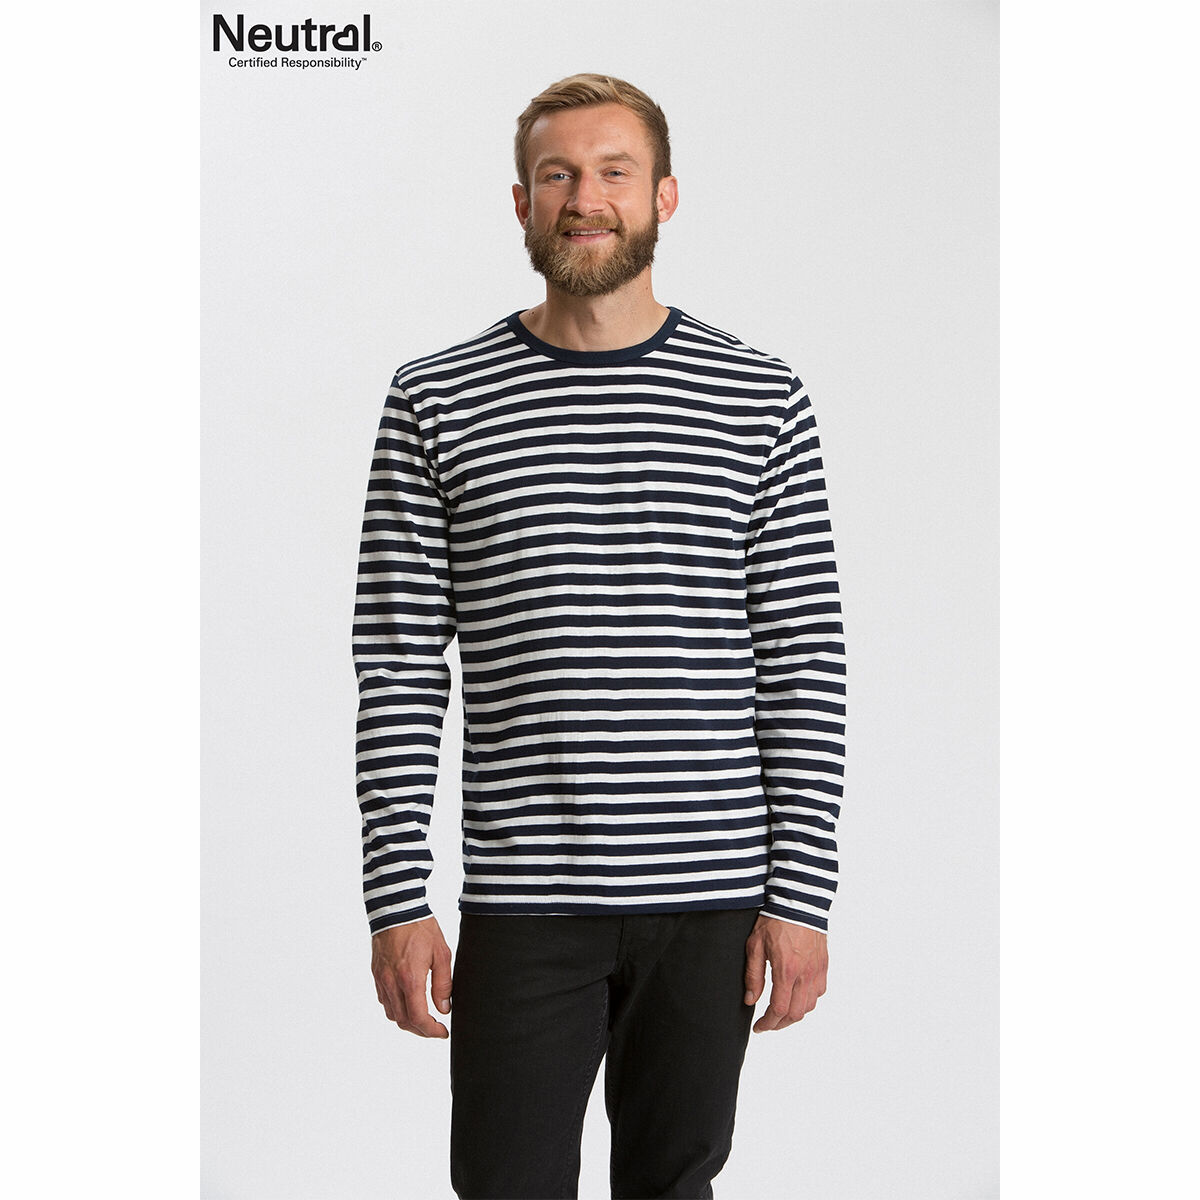 Neutral Long Sleeve Organic Men's T-shirt Striped